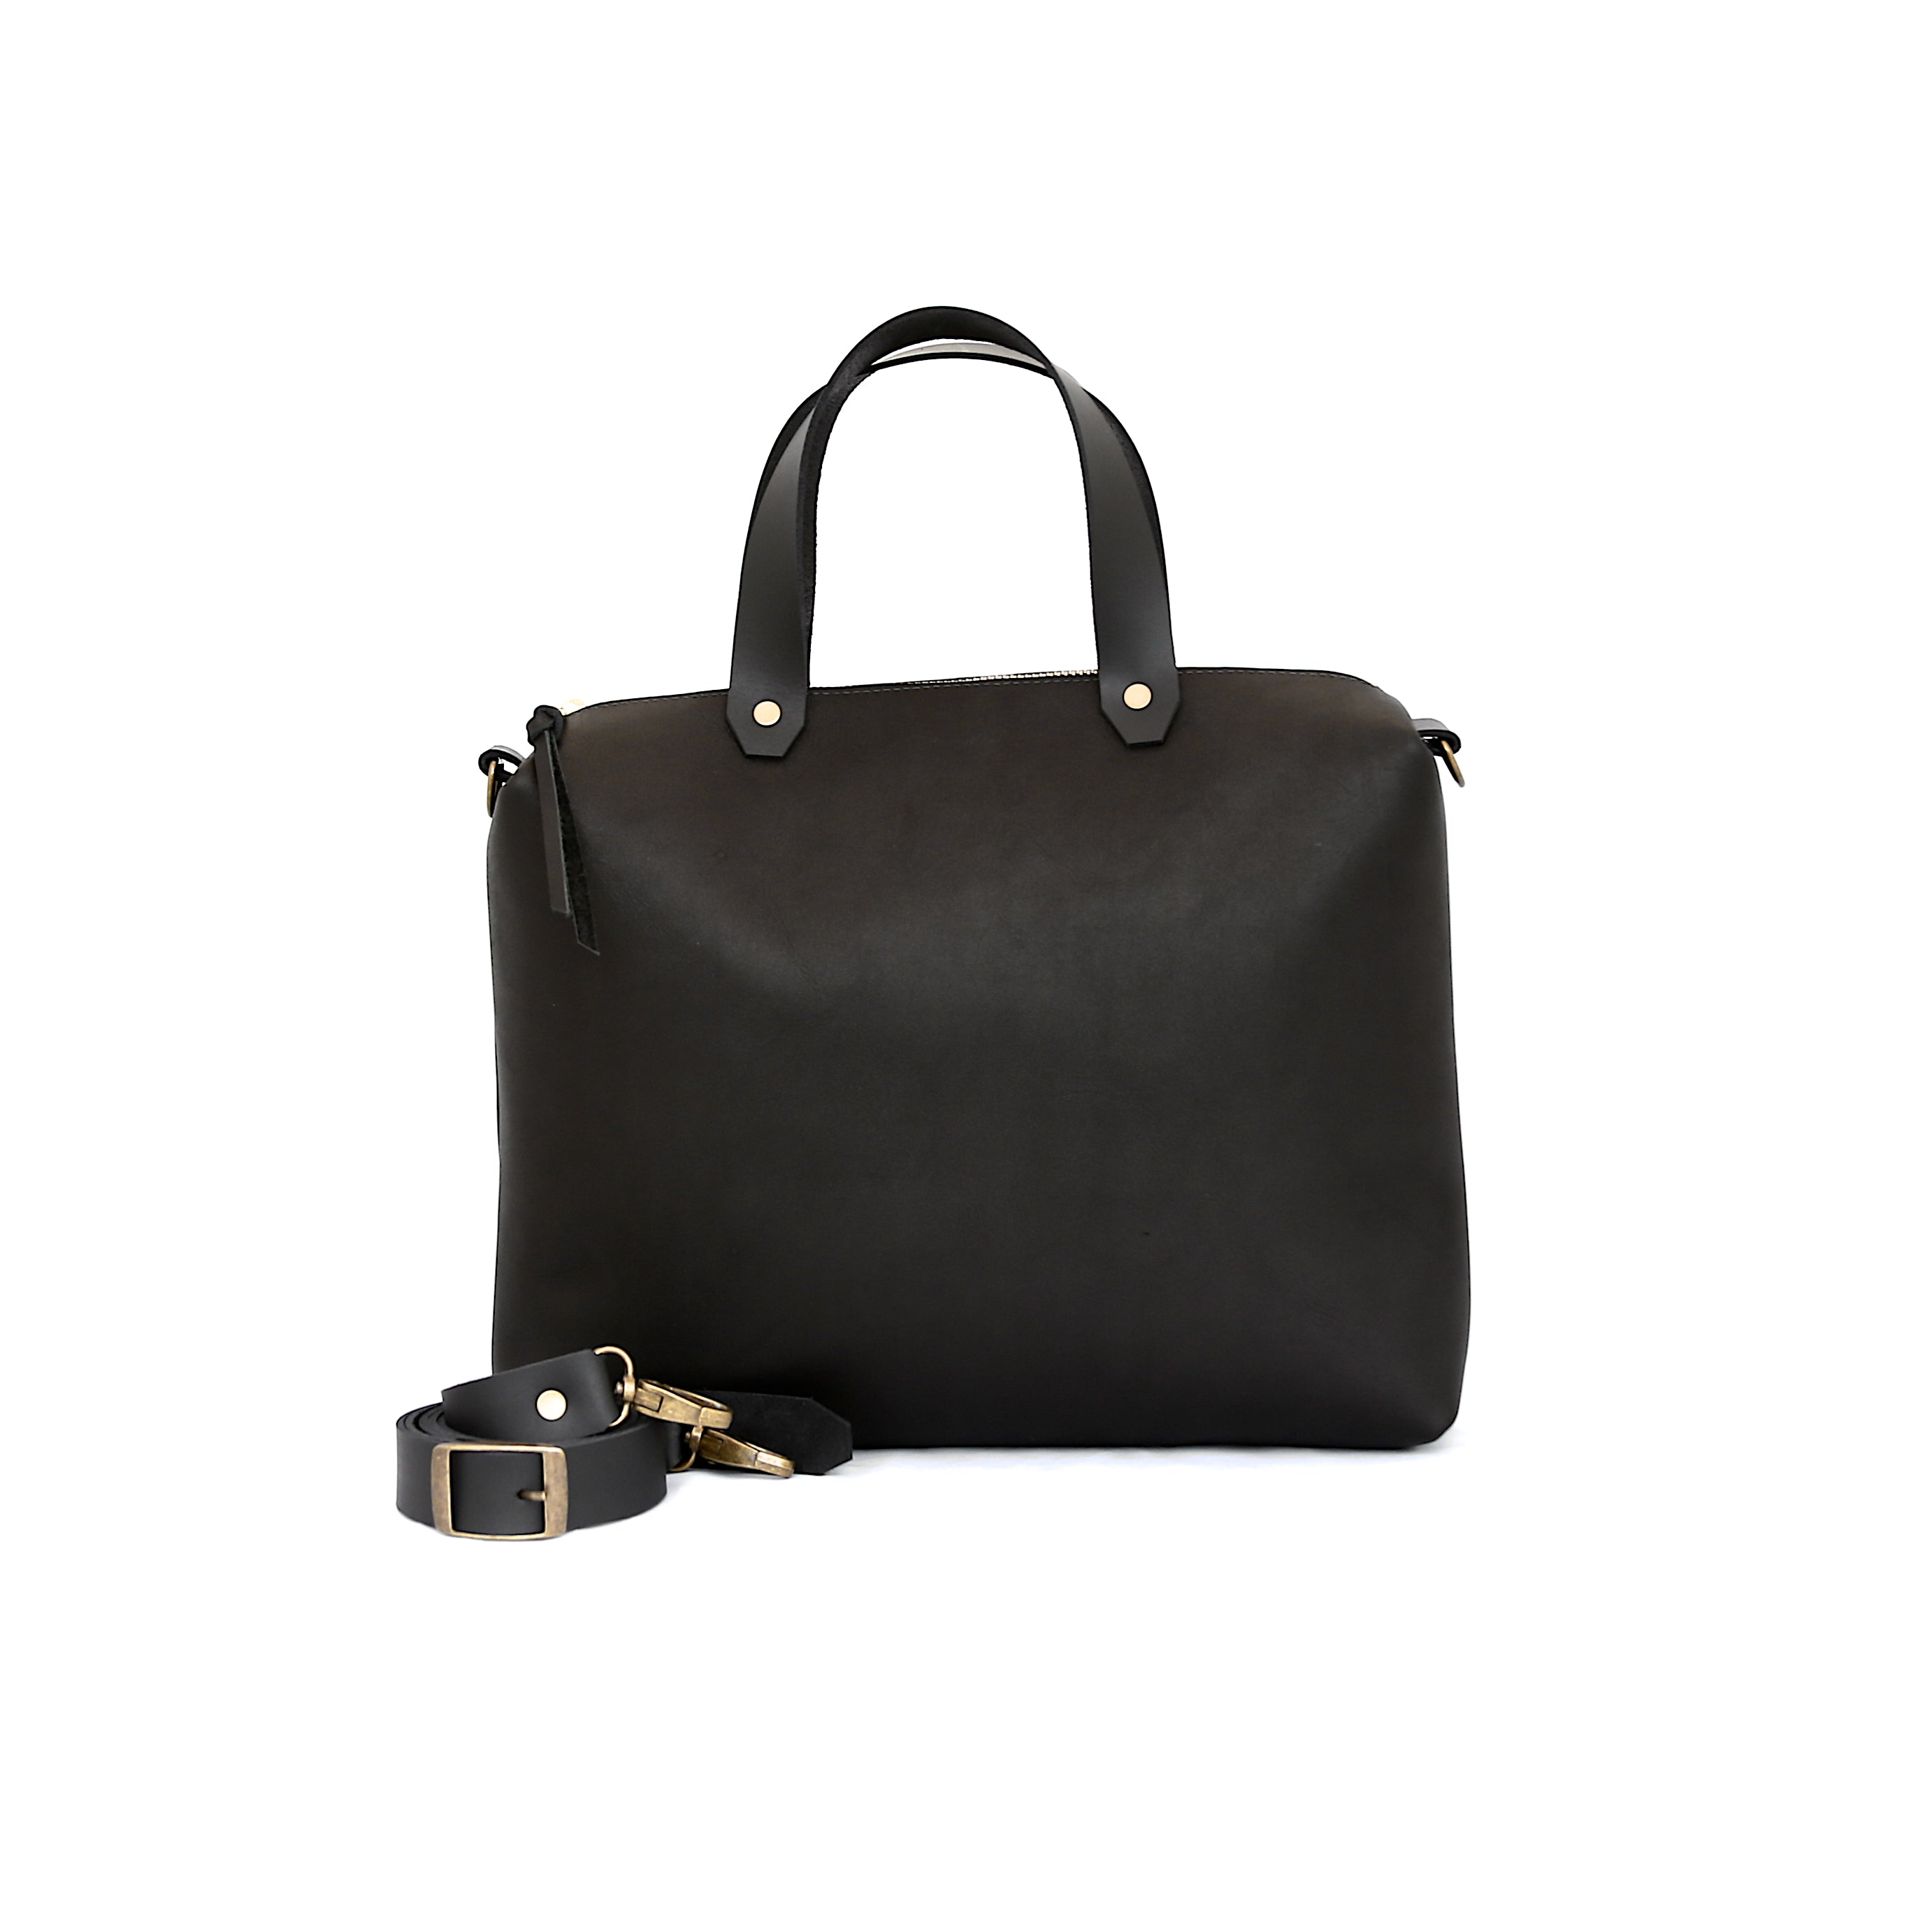 Spy Bag In Black Leather - handcrafted by Market Canvas Leather in Tofino, BC, Canada